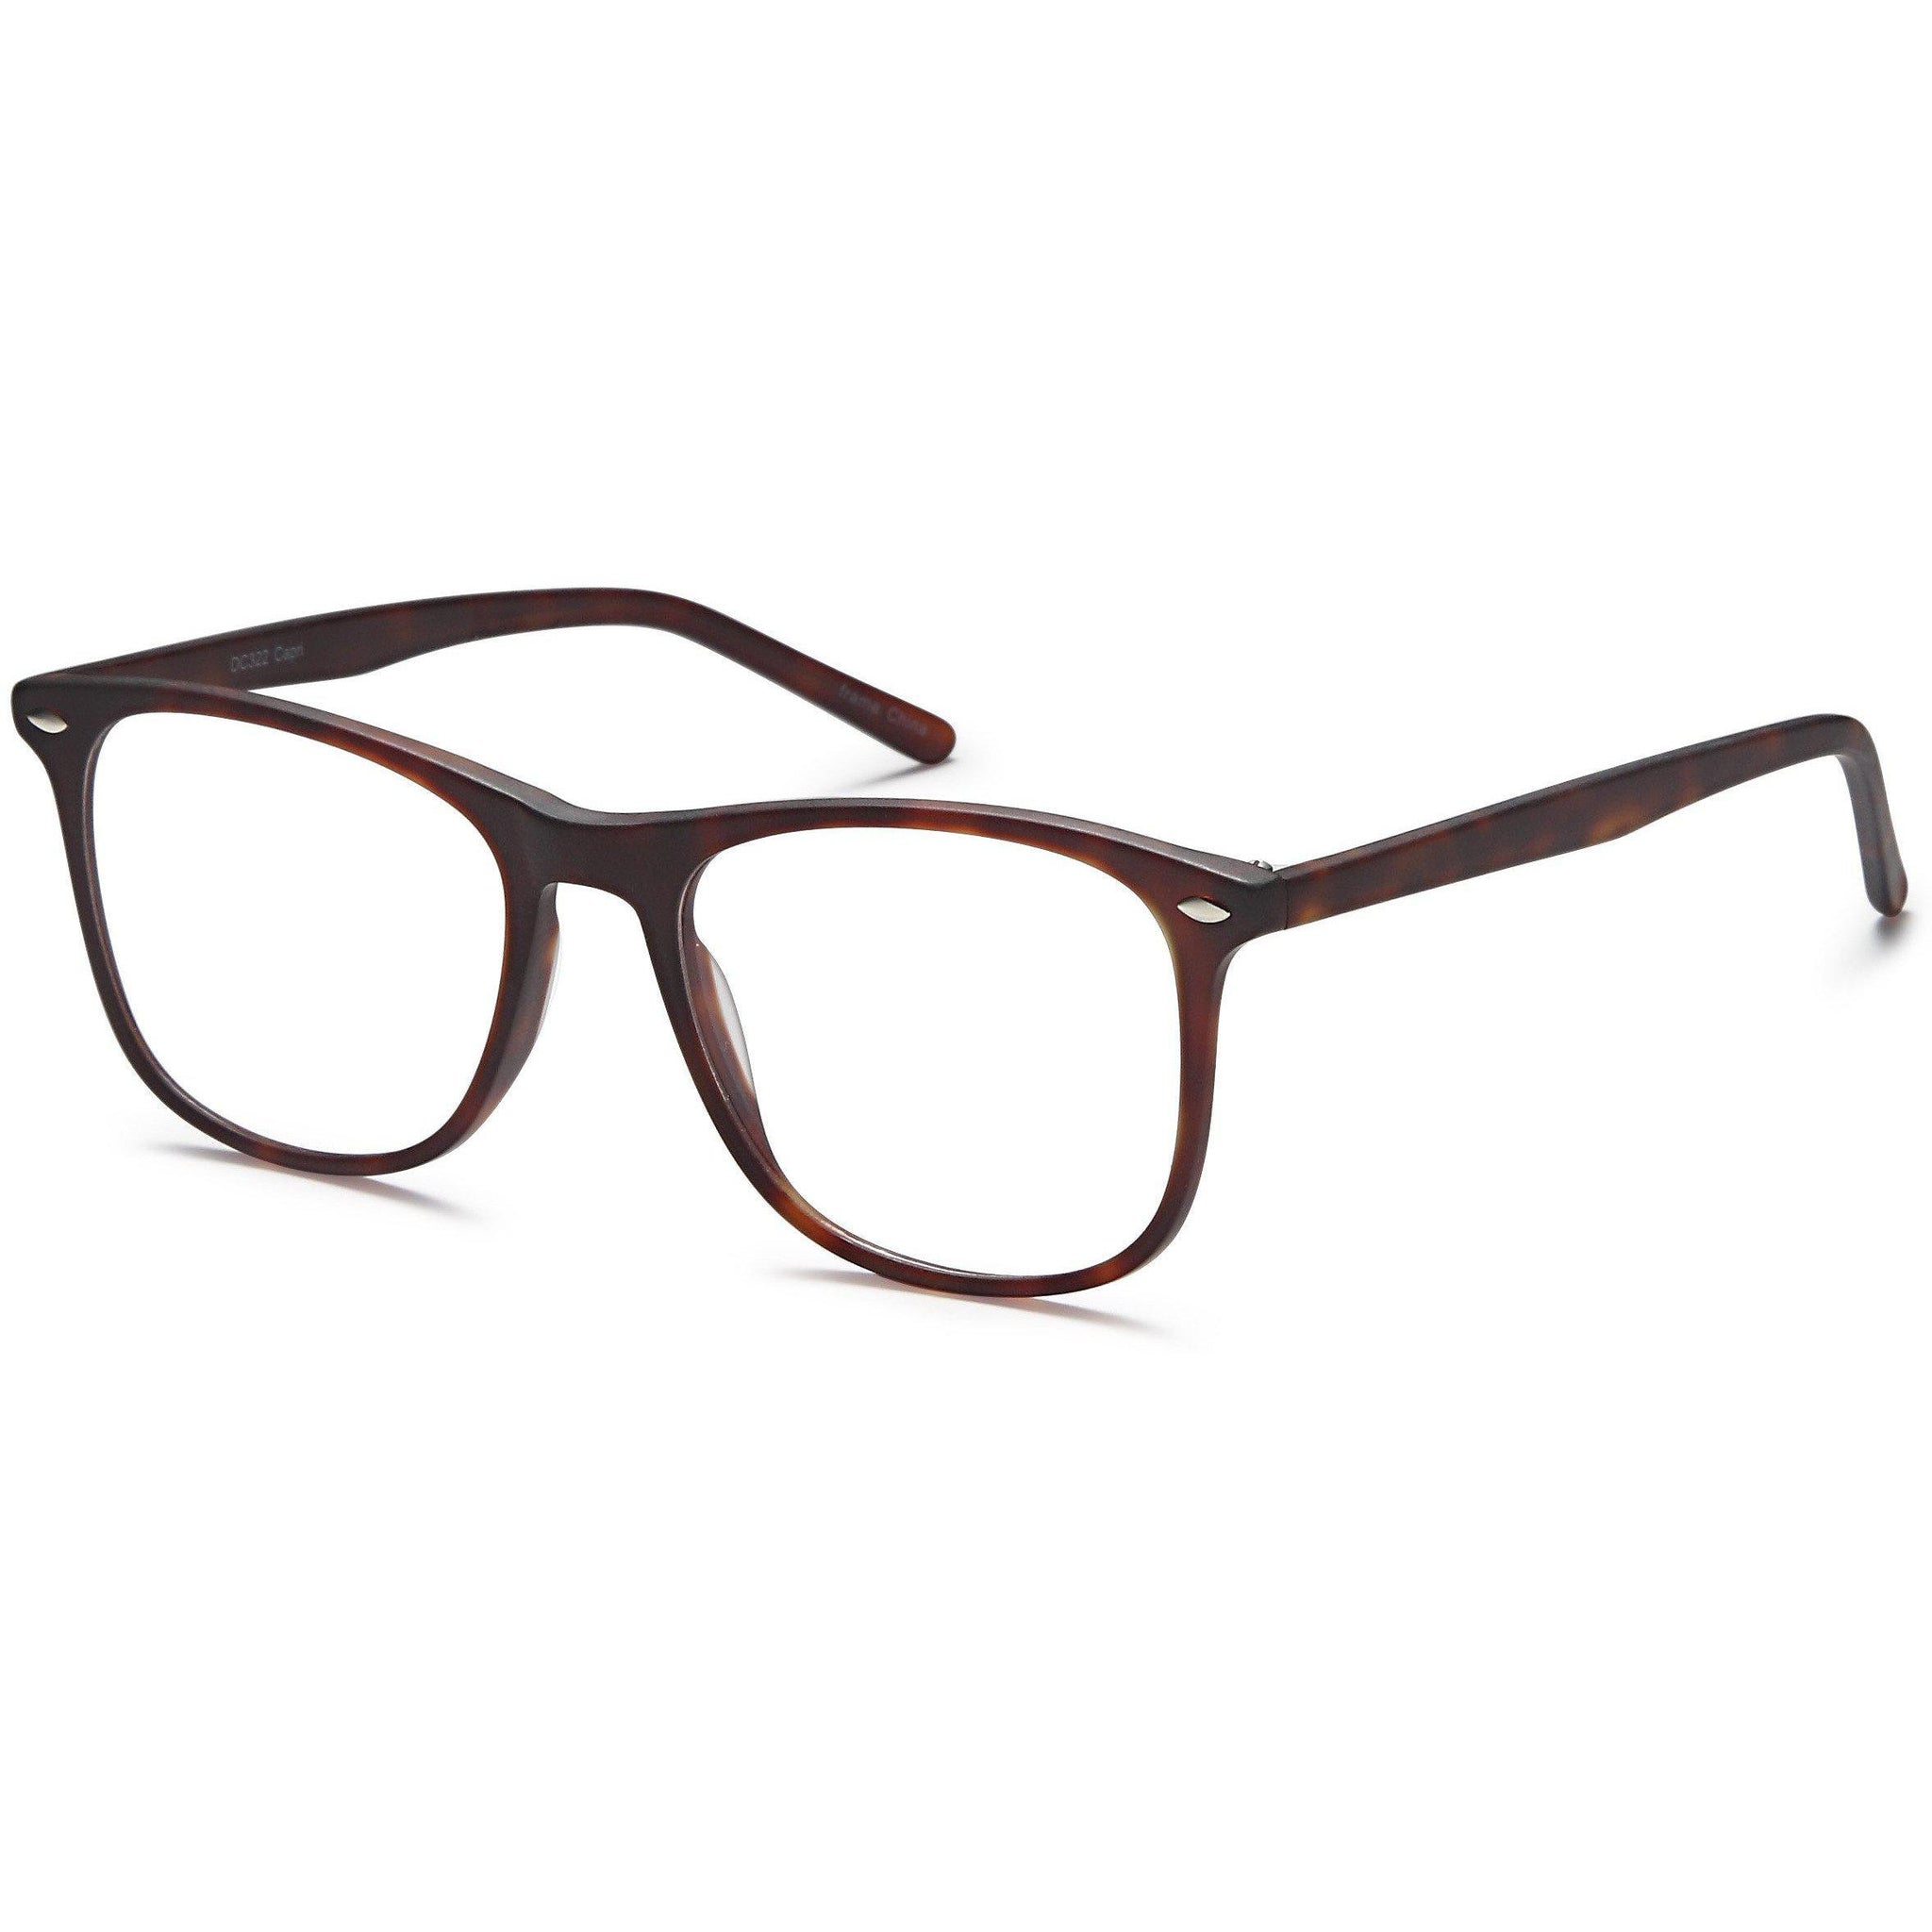 Di Caprio Prescription Glasses DC 322 Eyeglasses Frame - timetoshade